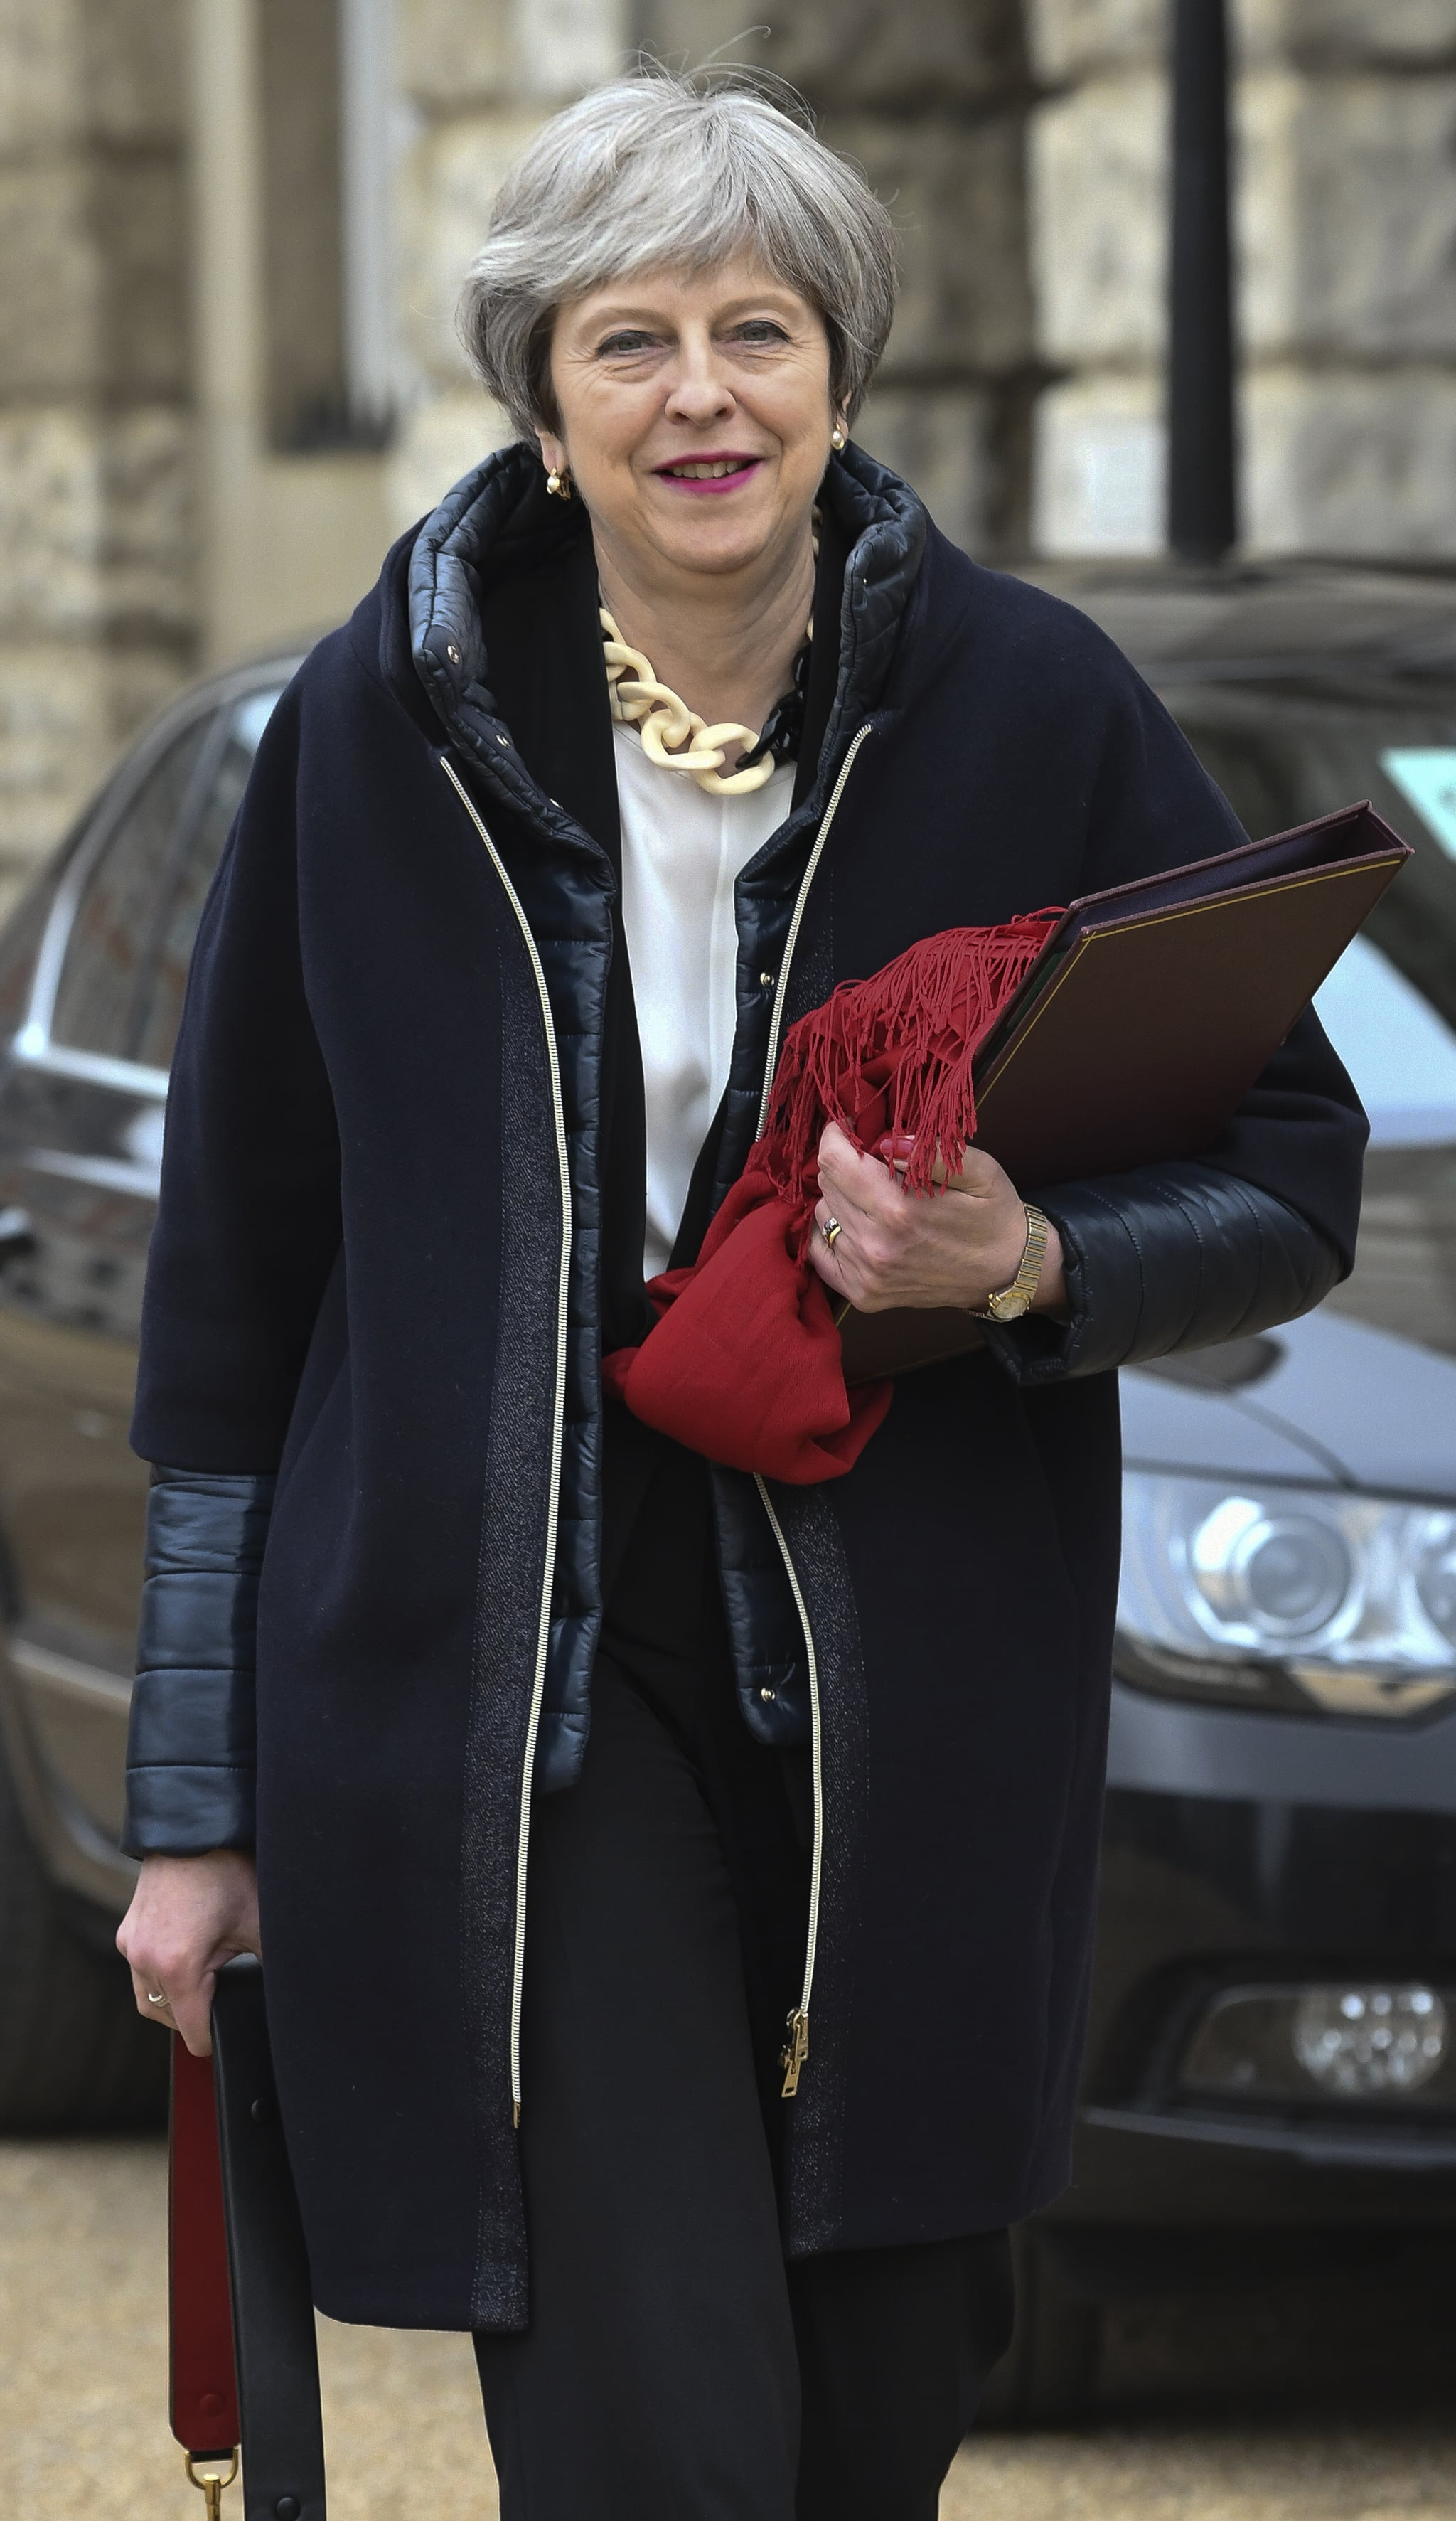 LONDON, ENGLAND - APRIL 12:  British Prime Minister Theresa May arrives for an emergency cabinet meeting at Downing Street on April 12, 2018 in London, England. British Prime Minister Theresa May has called an emergency cabinet meeting amid speculation she will back US action against Syria.  (Photo by Steve Back/Getty Images)